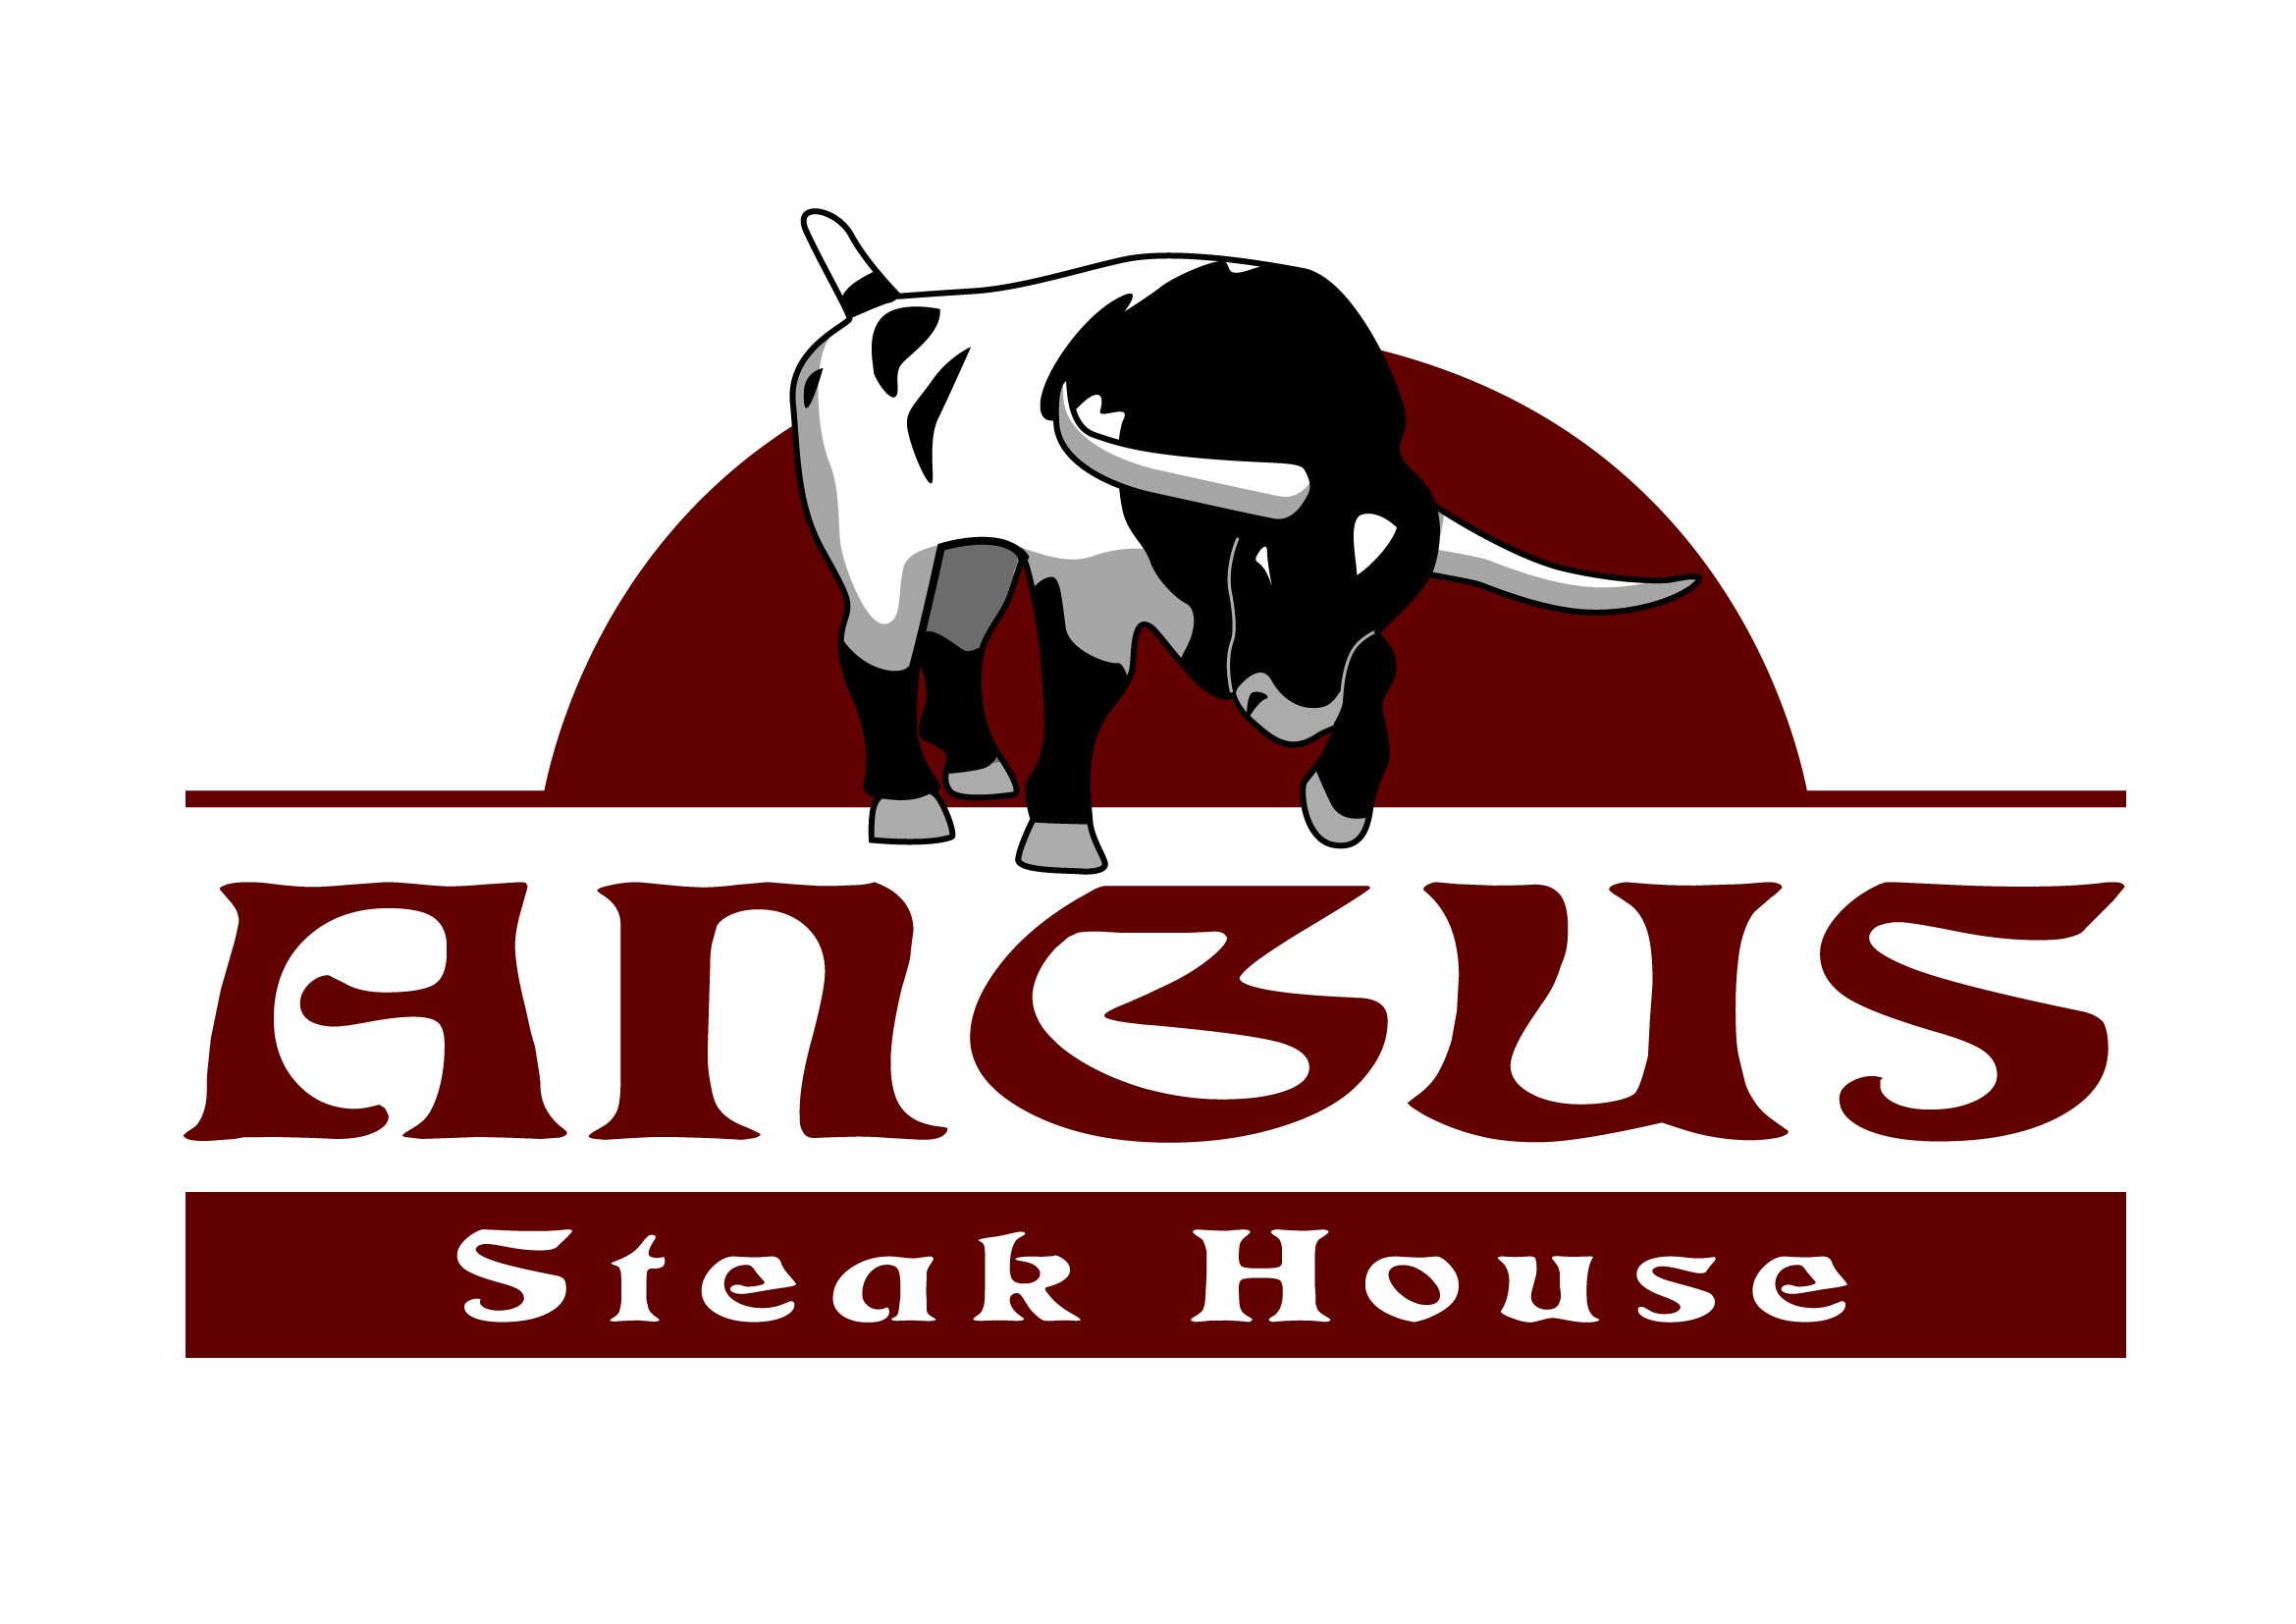 Logo Design by Wilfredo Mendoza - Entry No. 33 in the Logo Design Contest Imaginative Custom Design for Angus Steakhouse.